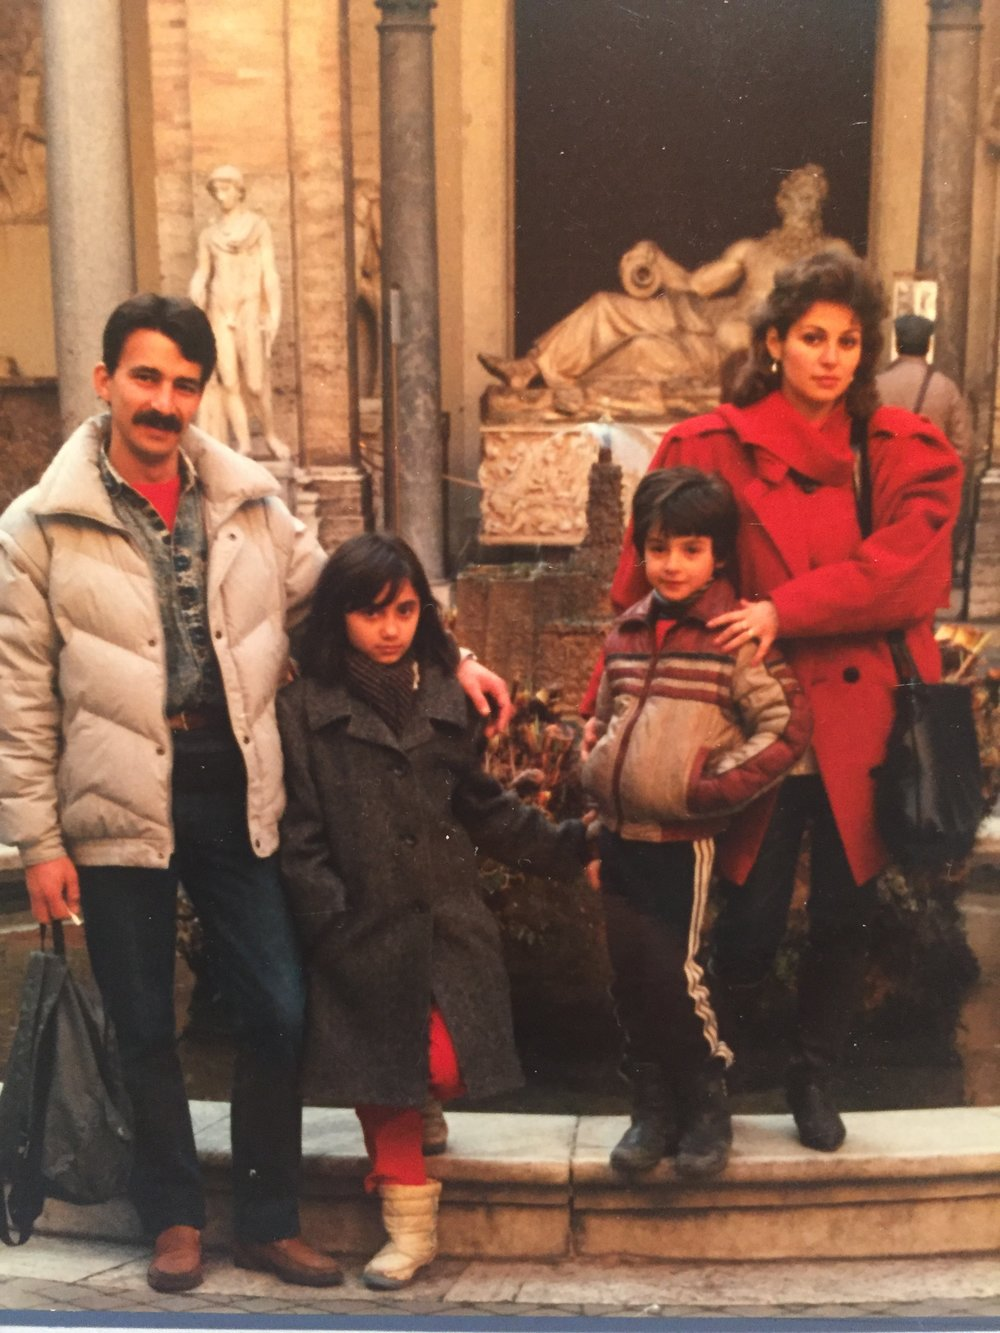 The Vatican with my friend and his mom and her friend - Winter, 1990 (*Ch XIX)